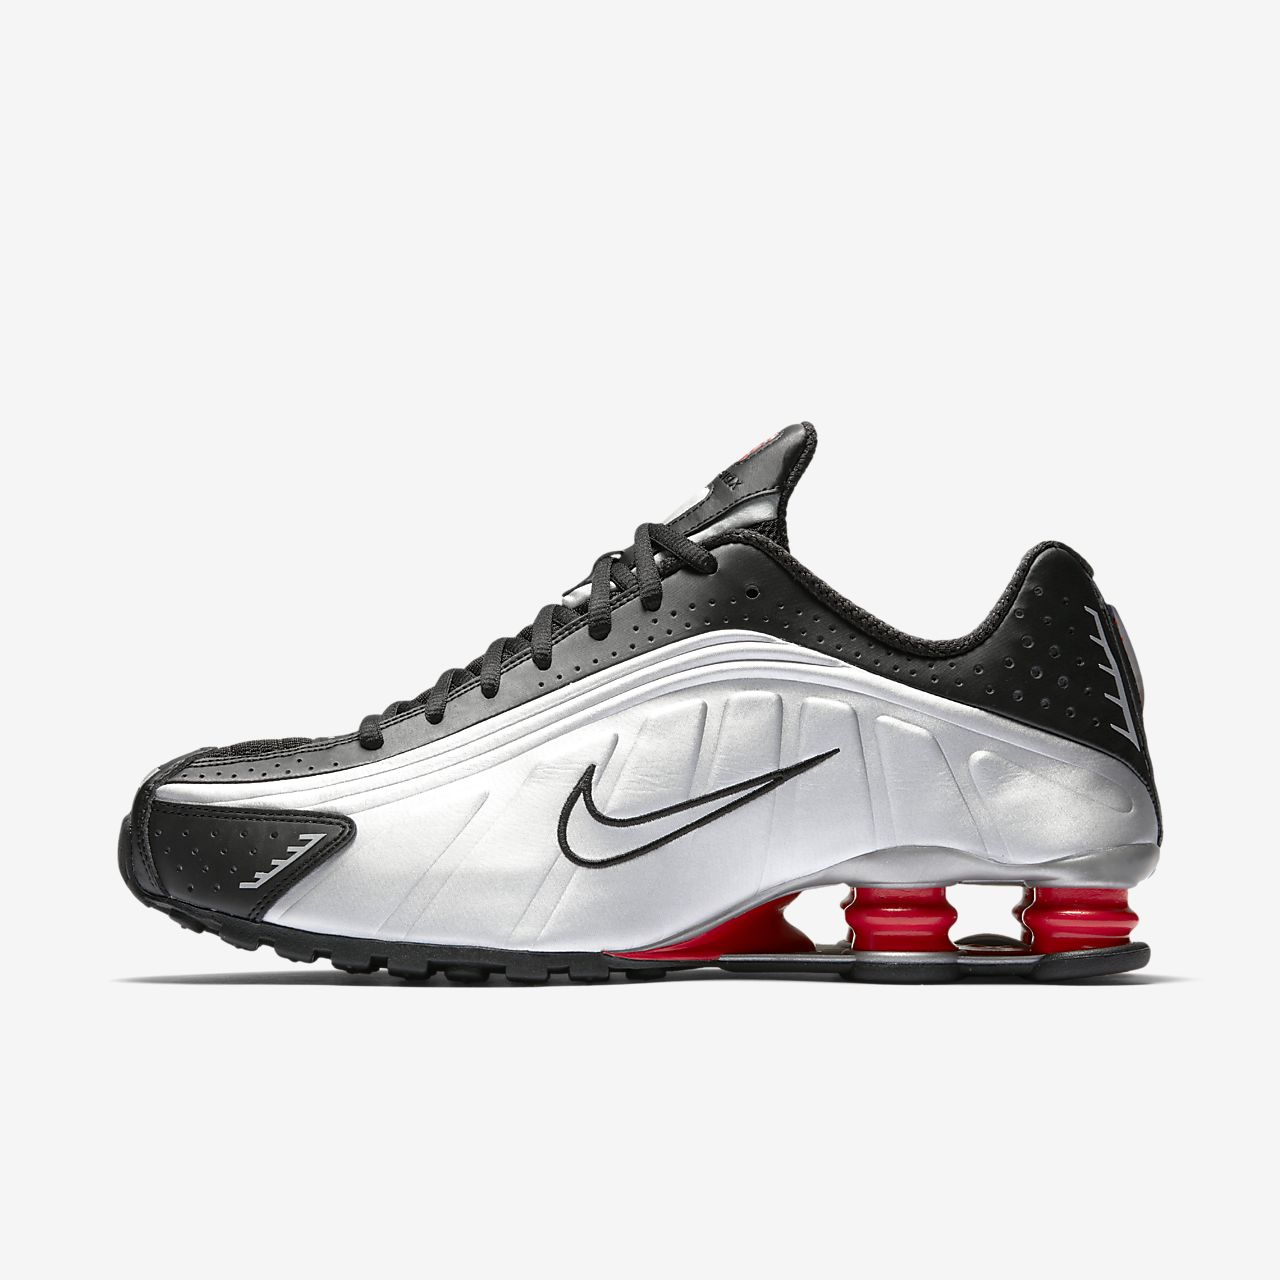 new product 320a7 f1658 Shoe. Nike Shox R4